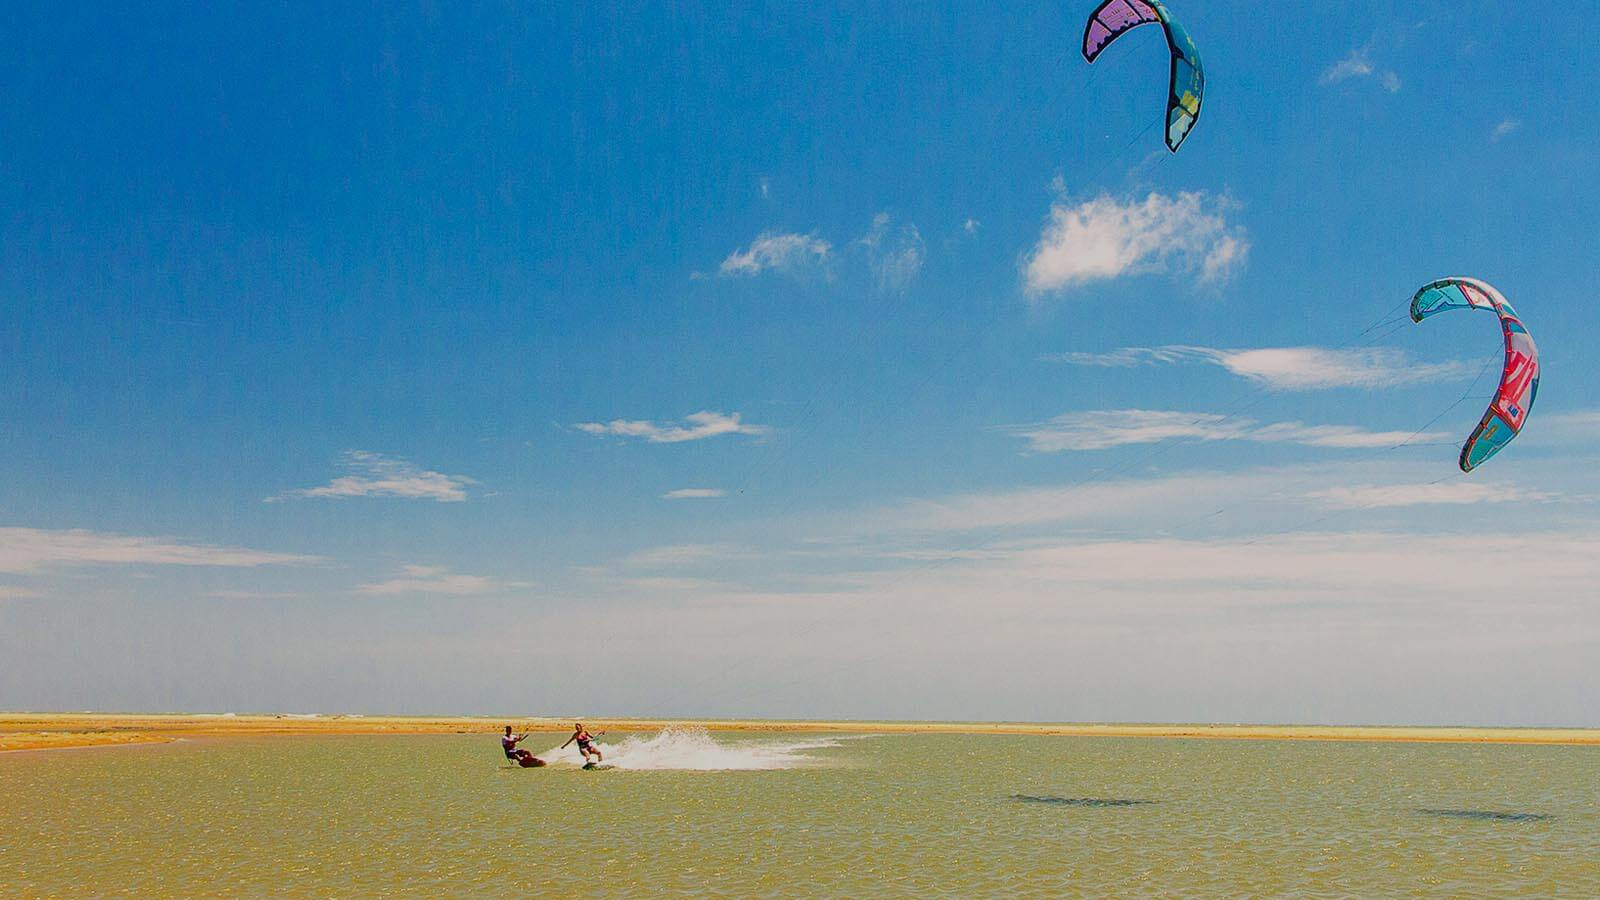 Windsurfing and Kitesurfing Sri Lanka